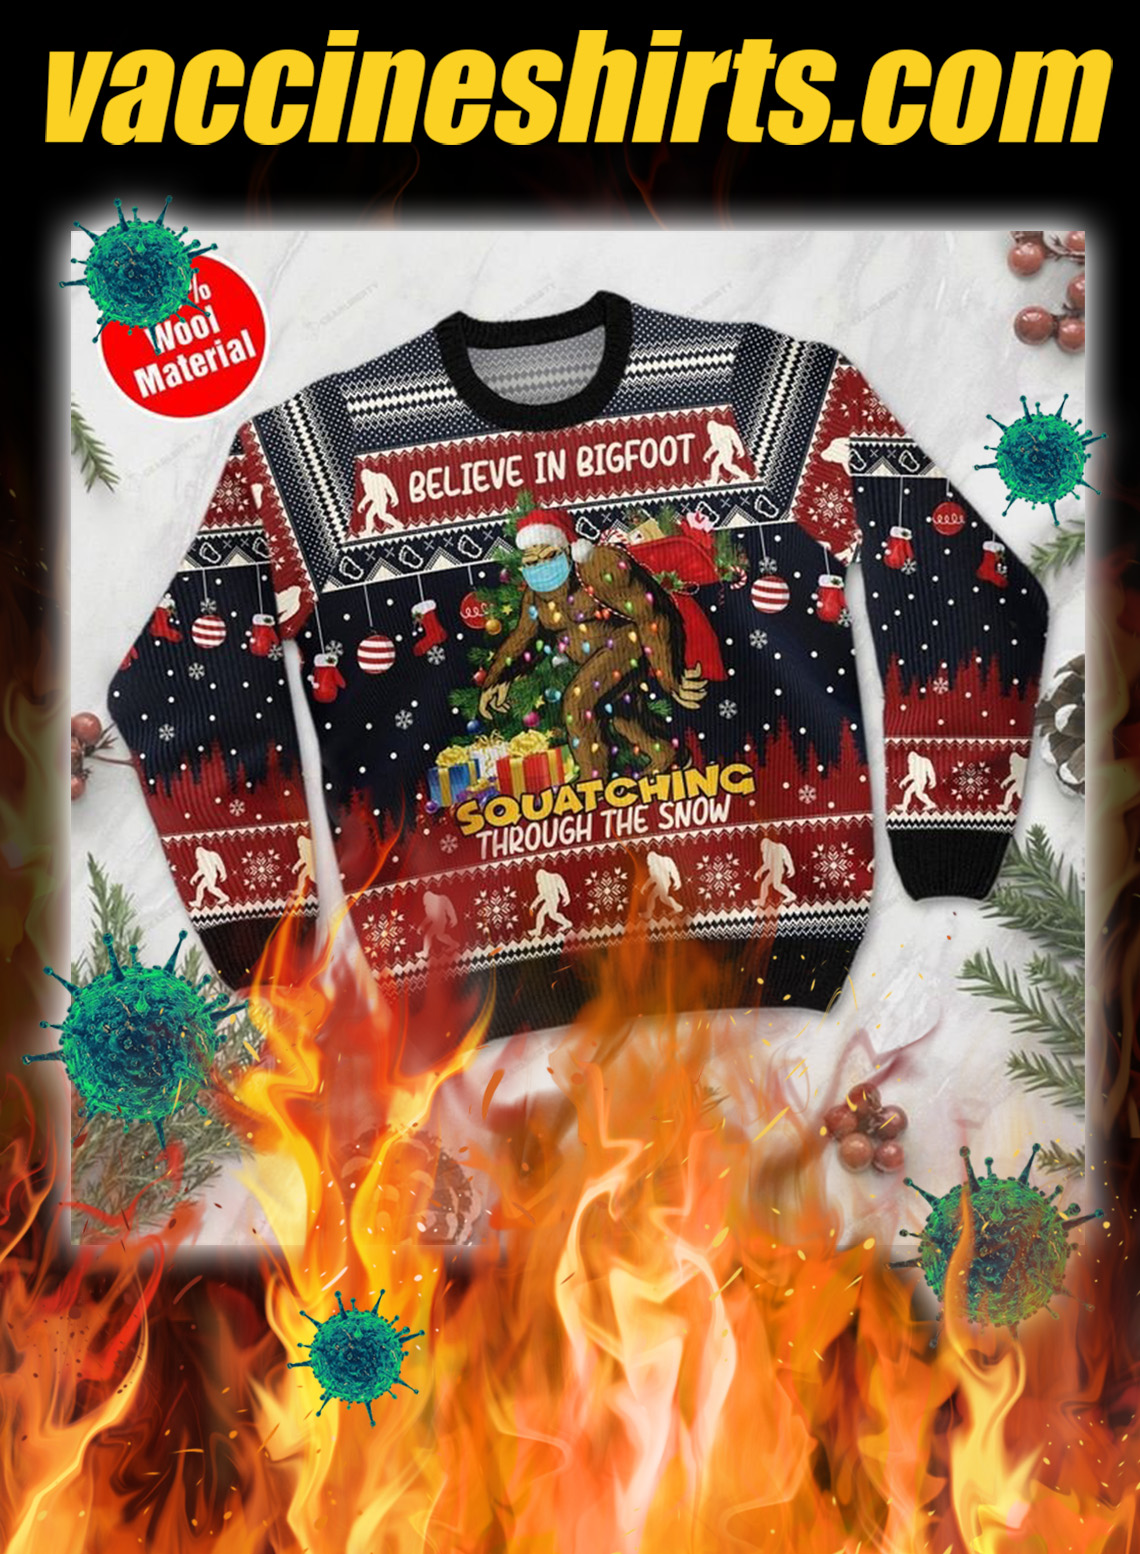 Believe in bigfoot 3d christmas sweater- pic 1